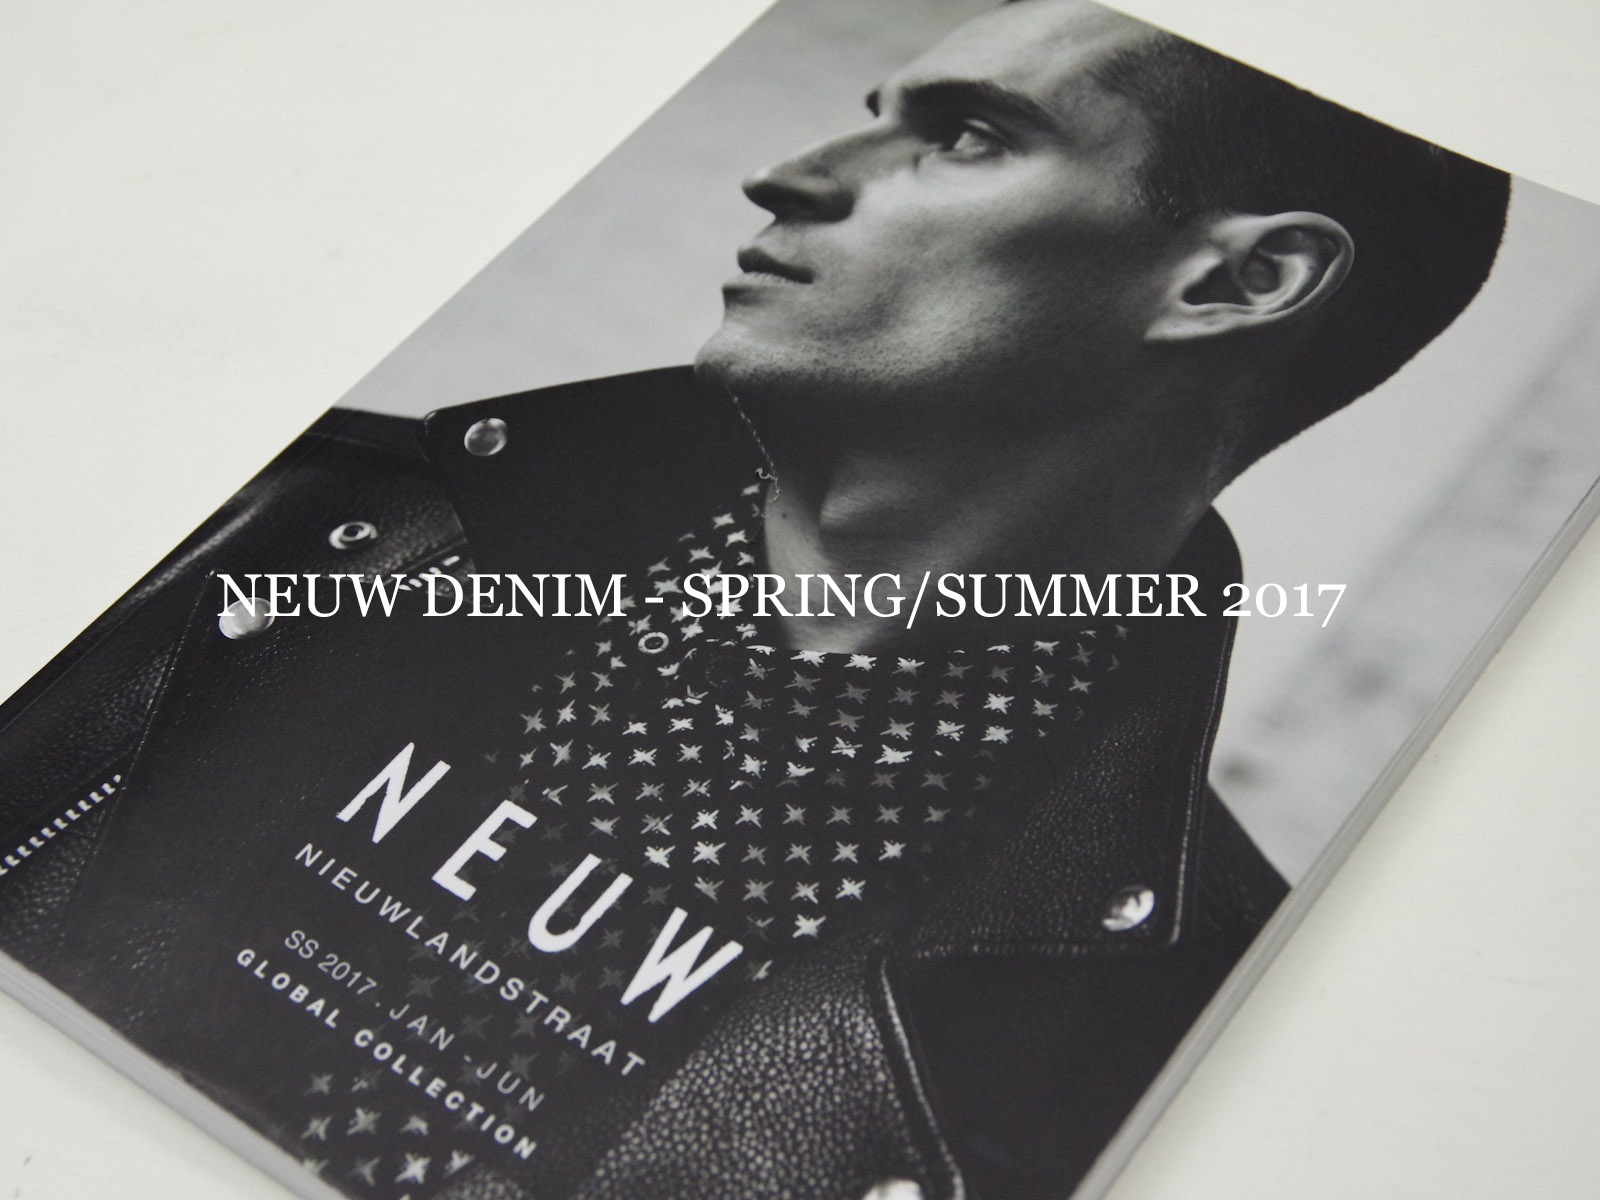 NEUW DENIM – SPRING SUMMER 2017